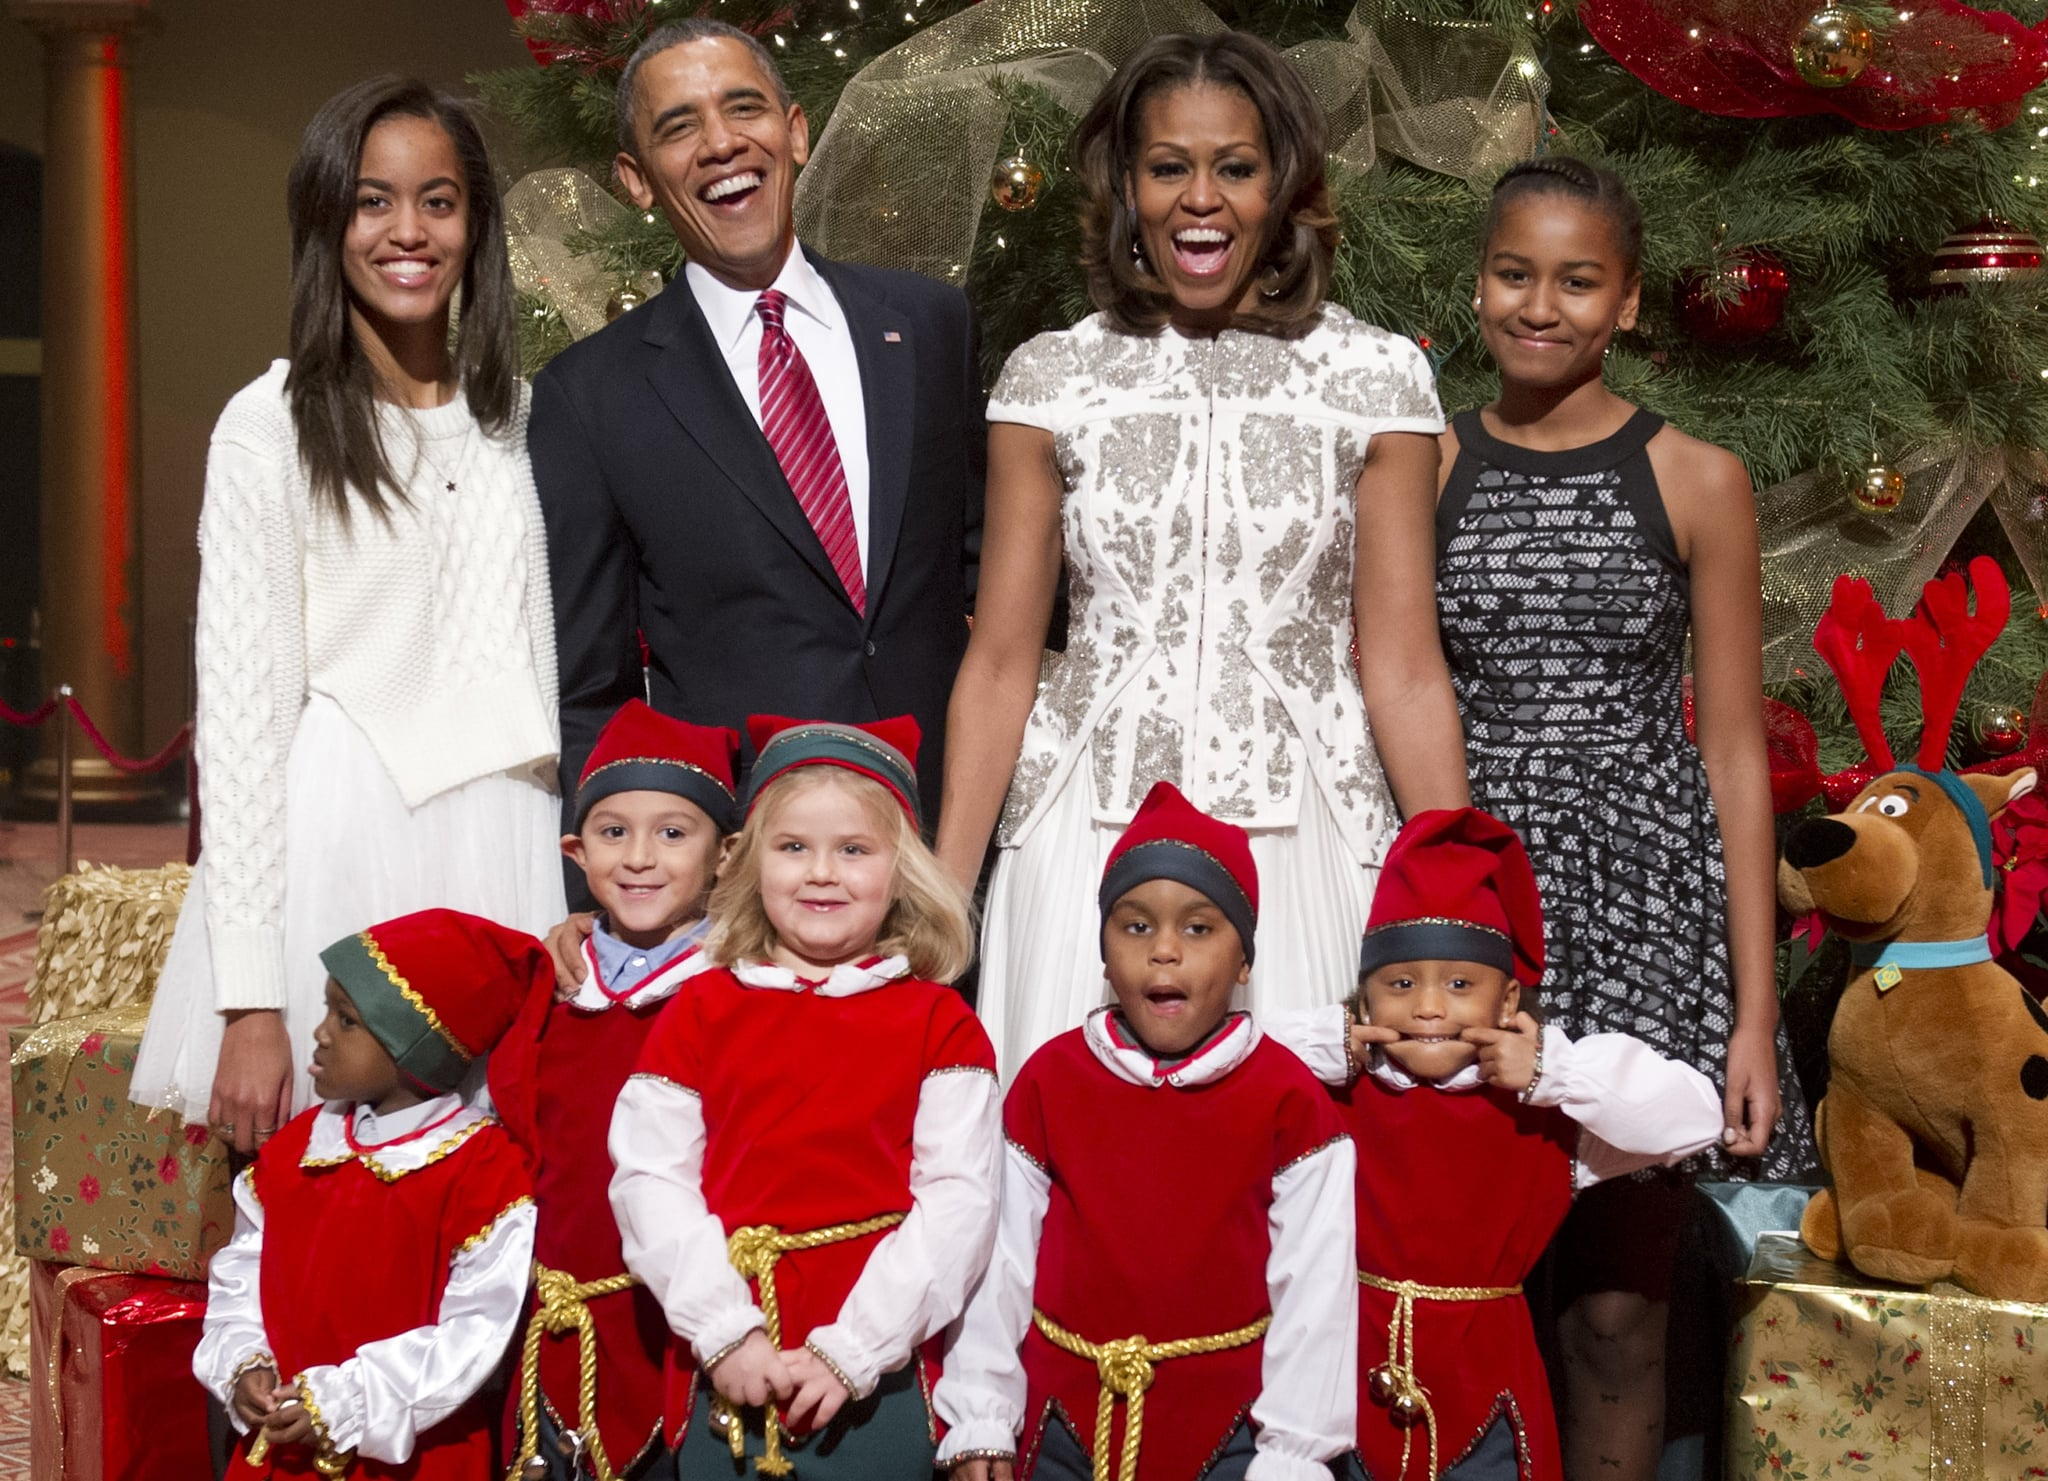 President Barack Obama and First Lady Michelle Obama had a laugh with their family while hanging out with children dressed up as elves during a taping of TNT's Christmas in Washington special.